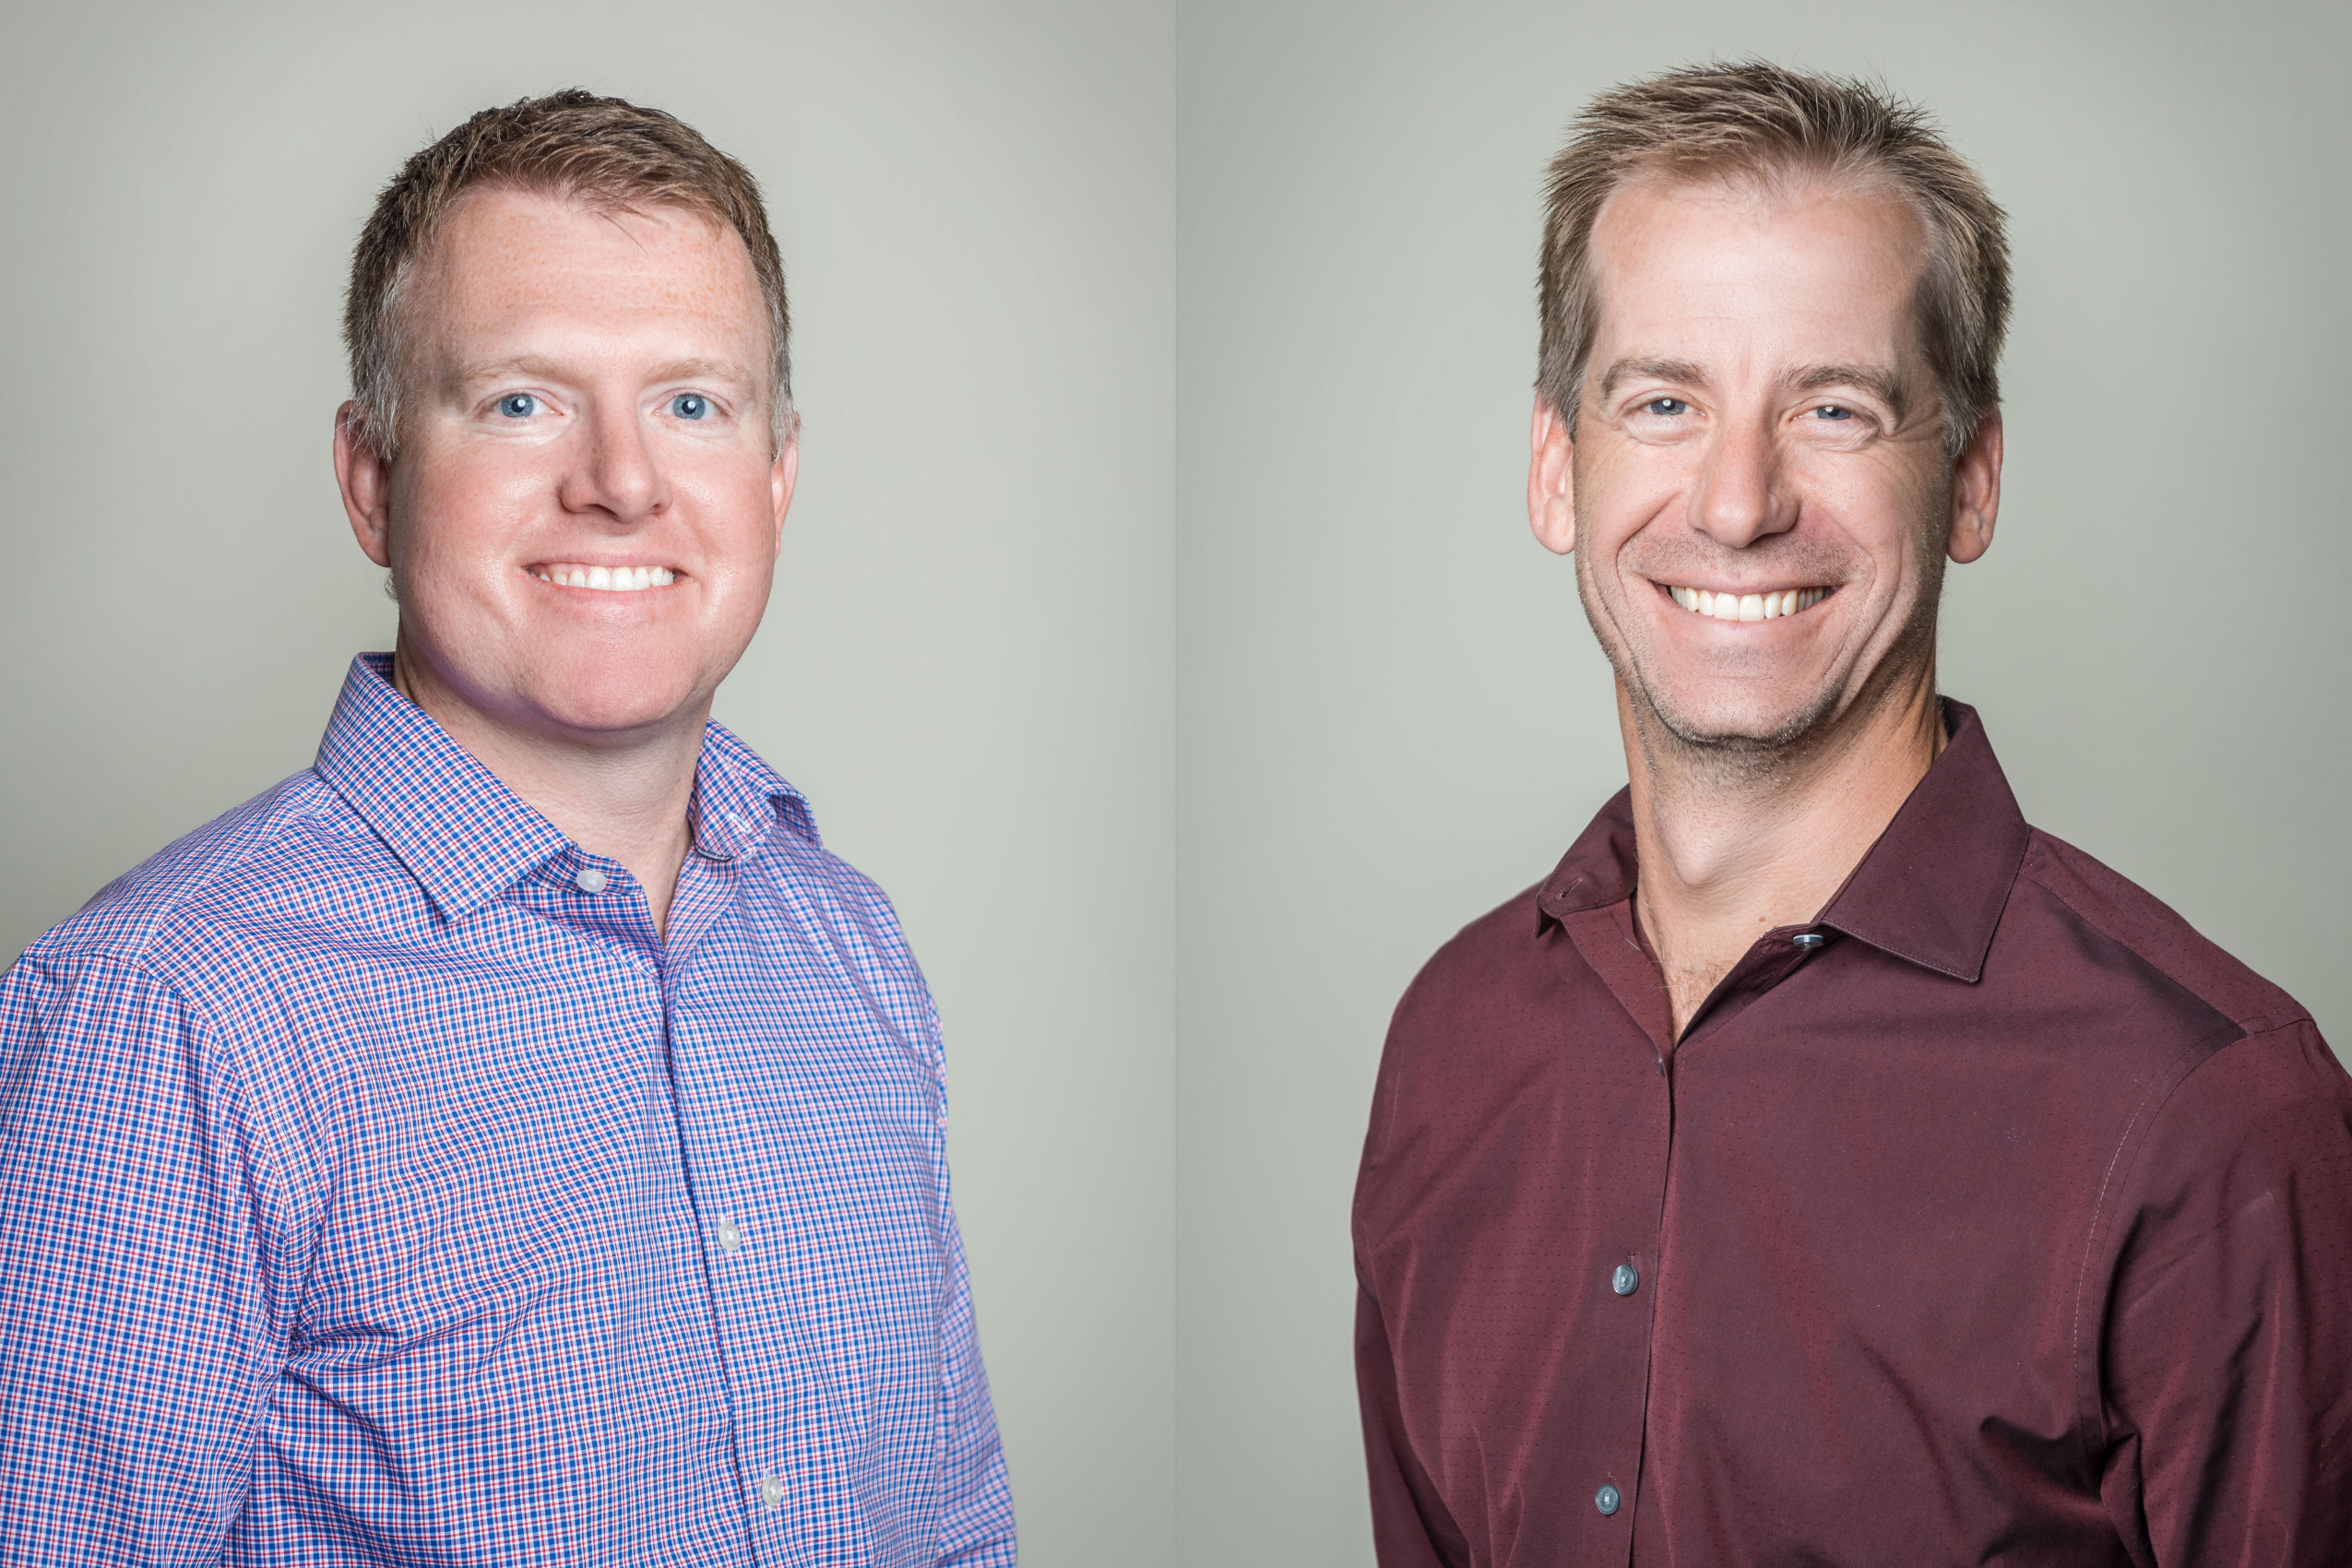 Schedule a meeting with Clint Walkner and Nate Condon